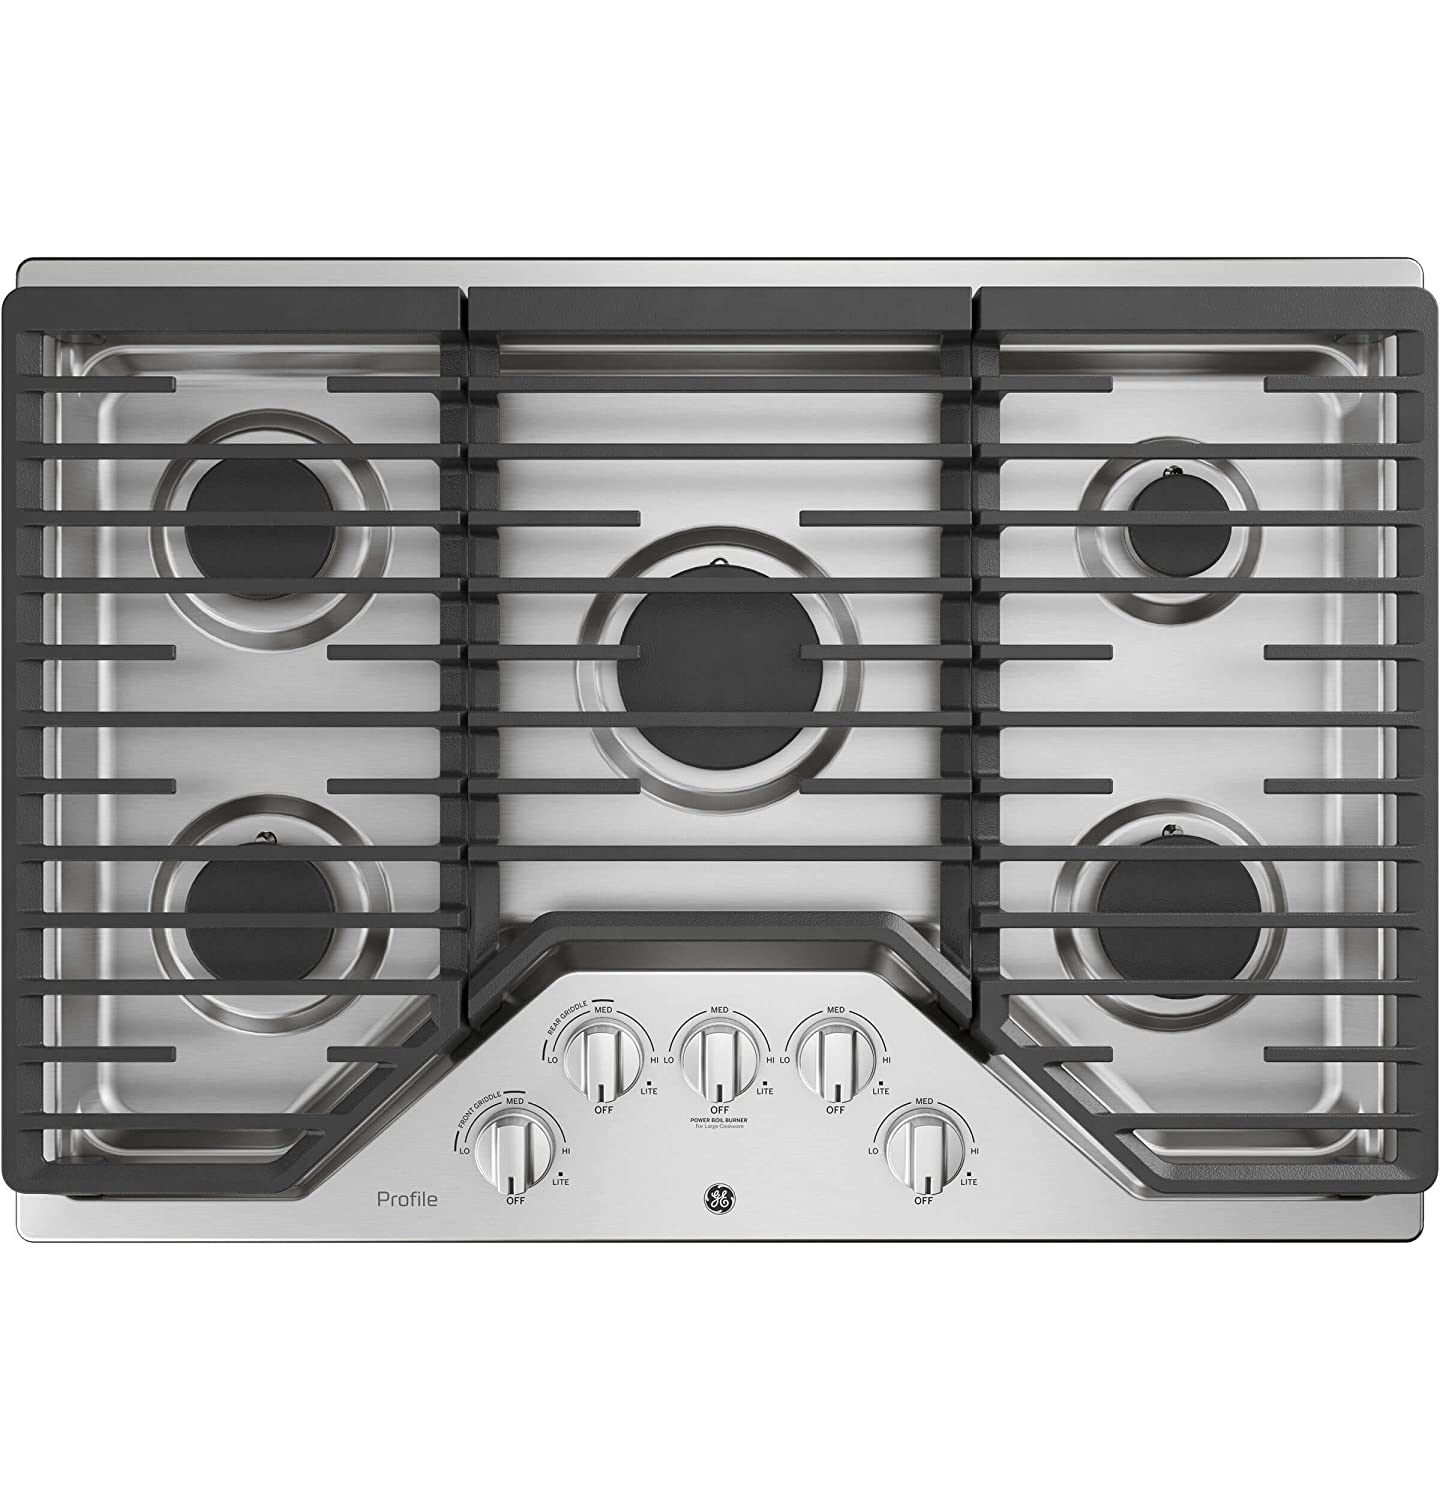 GE Profile PGP7030SLSS 30 Inch Natural Gas Sealed Burner Style Cooktop with 5 Burners in Stainless Steel G.E. Profile